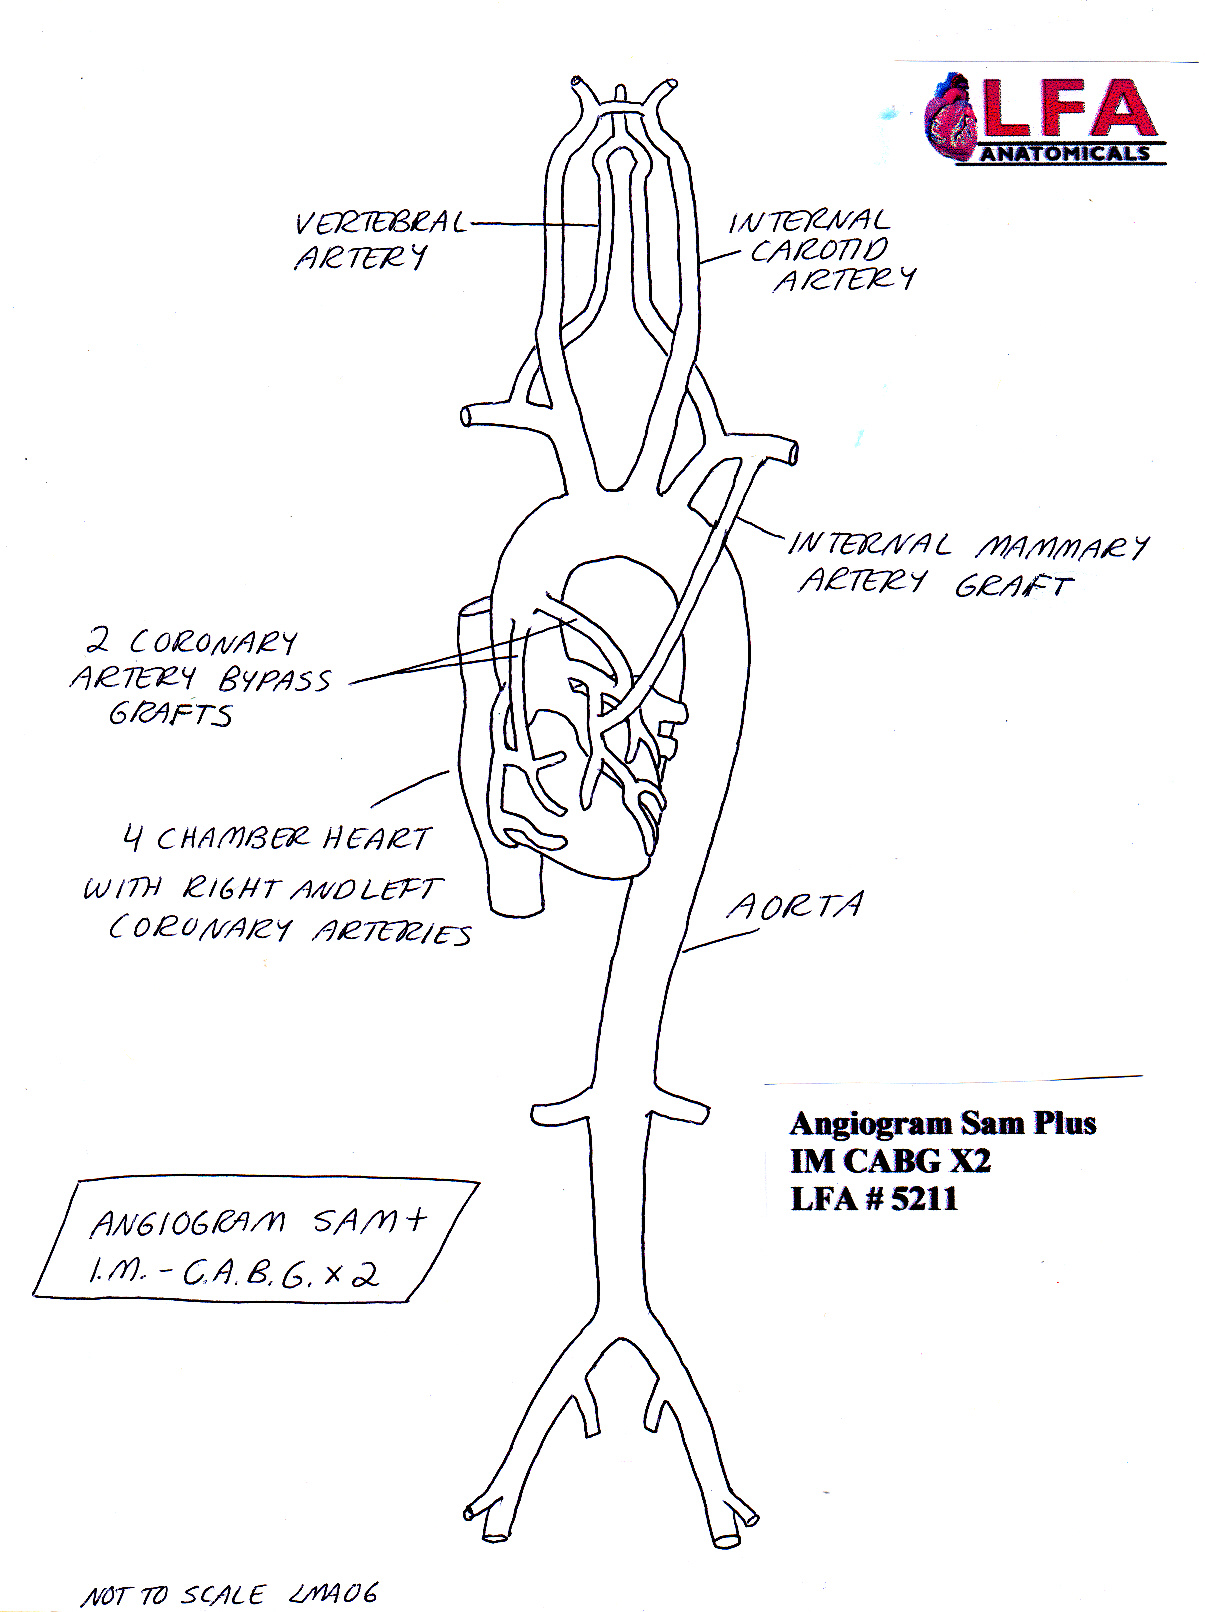 Fetal Artery Diagram